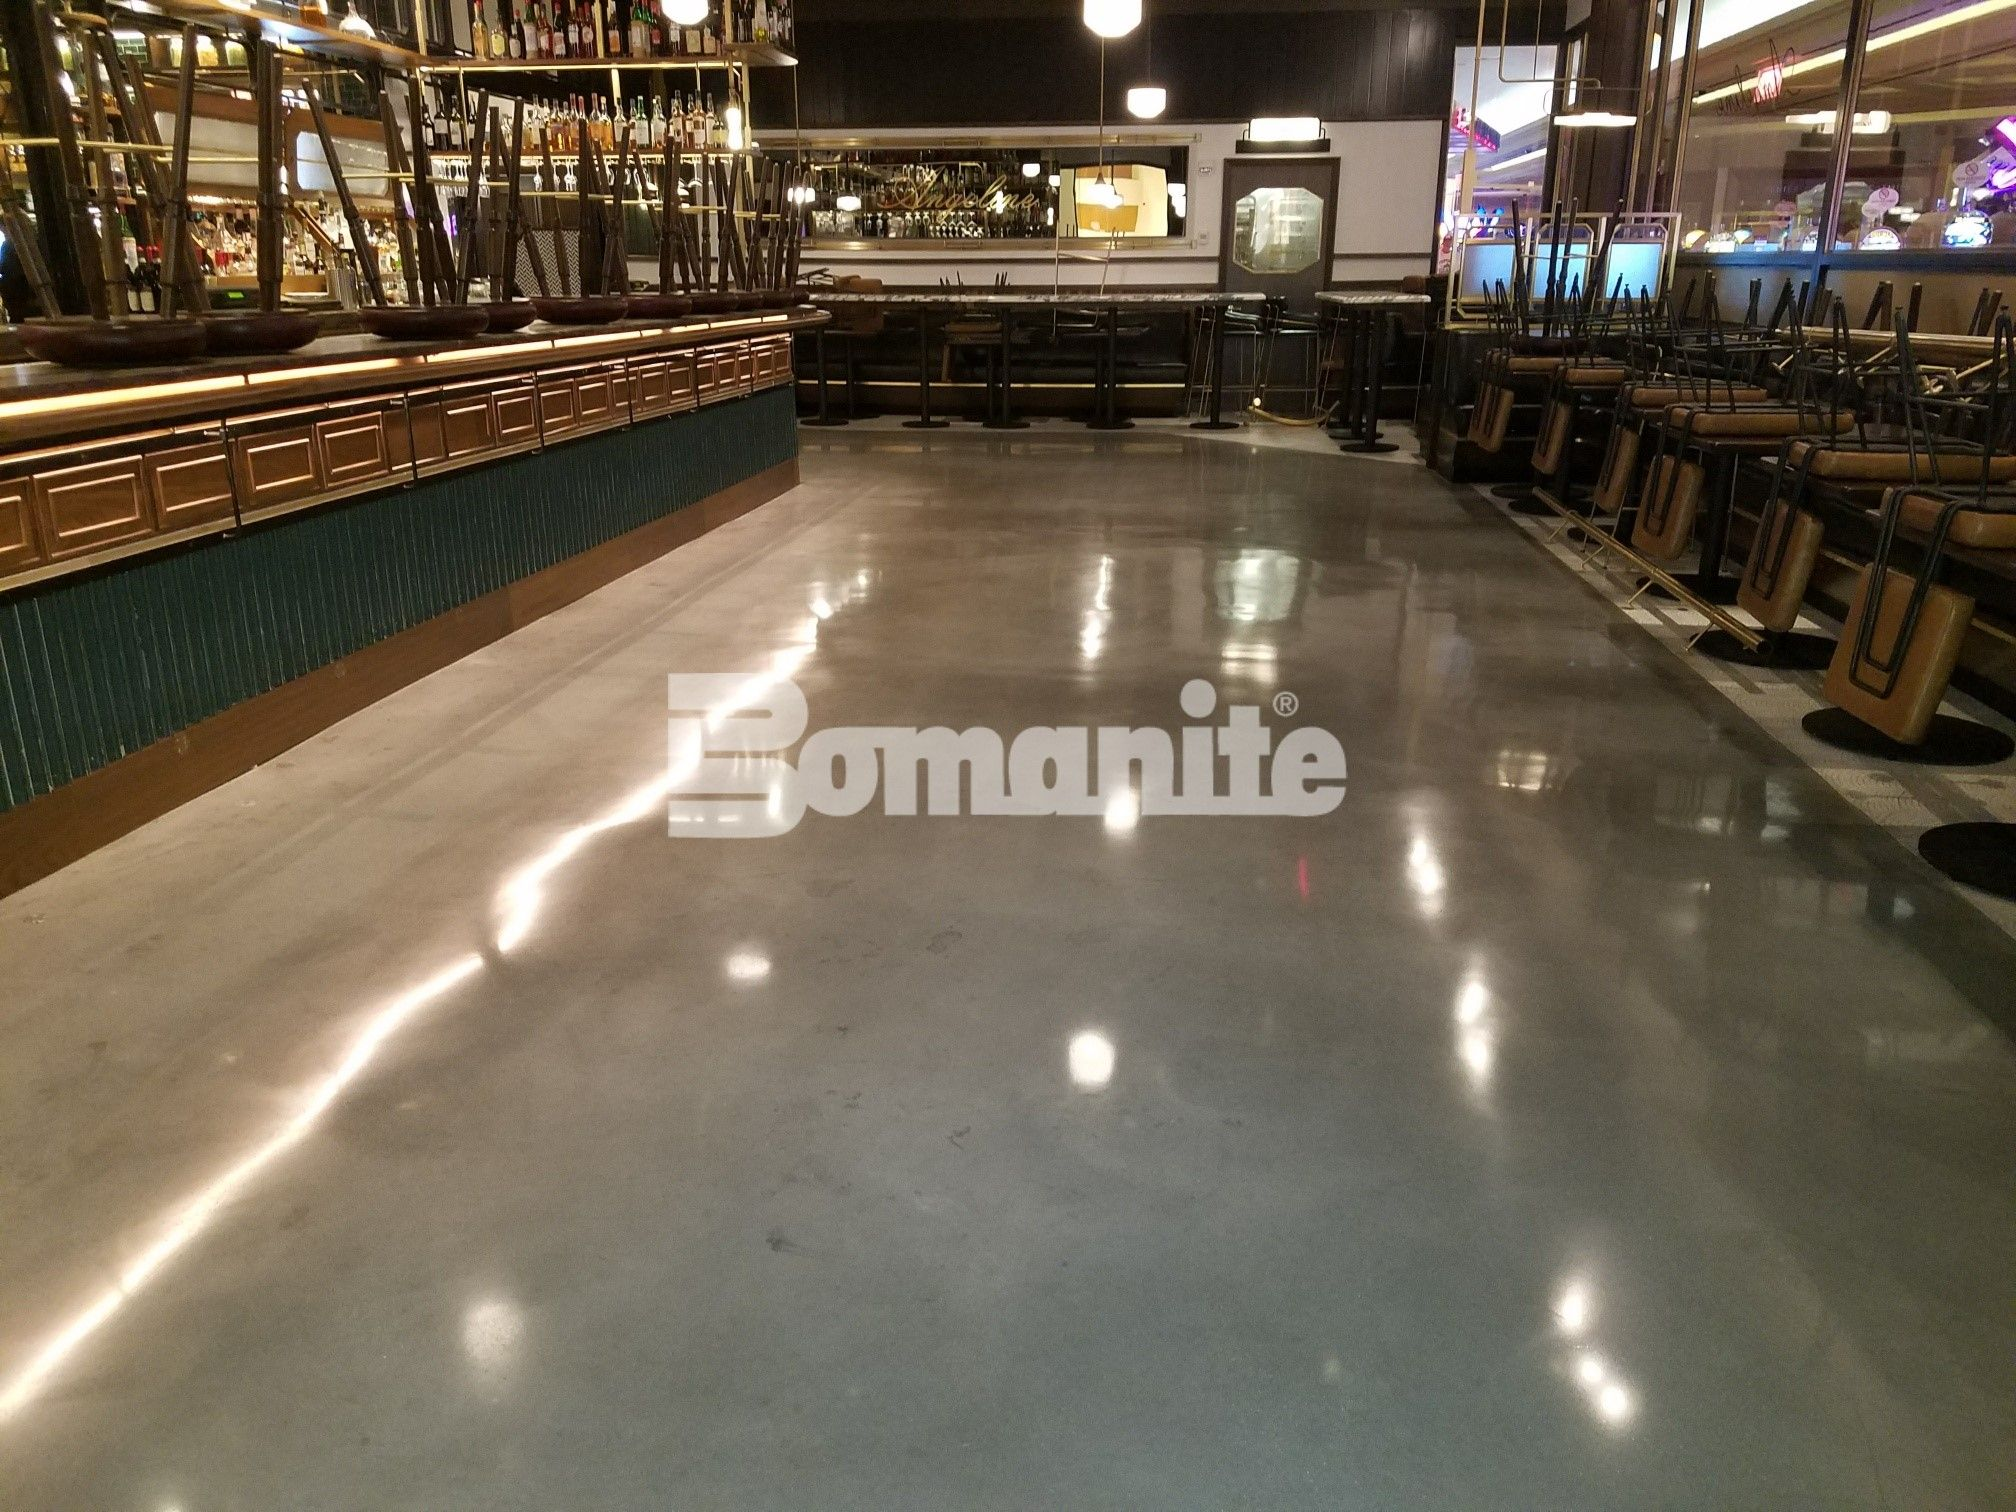 Featuring an unobstructed view of the gorgeous flooring at Angeline by Michael Symon located in the Borgata Hotel Casino and Spa in Atlantic City using Bomanite Decorative Concrete Bomanite Modena SL Custom Polished Concrete Floors installed by Beyond Concrete from Keyport, NJ for a Hi-End Iron Chef Restaurant.